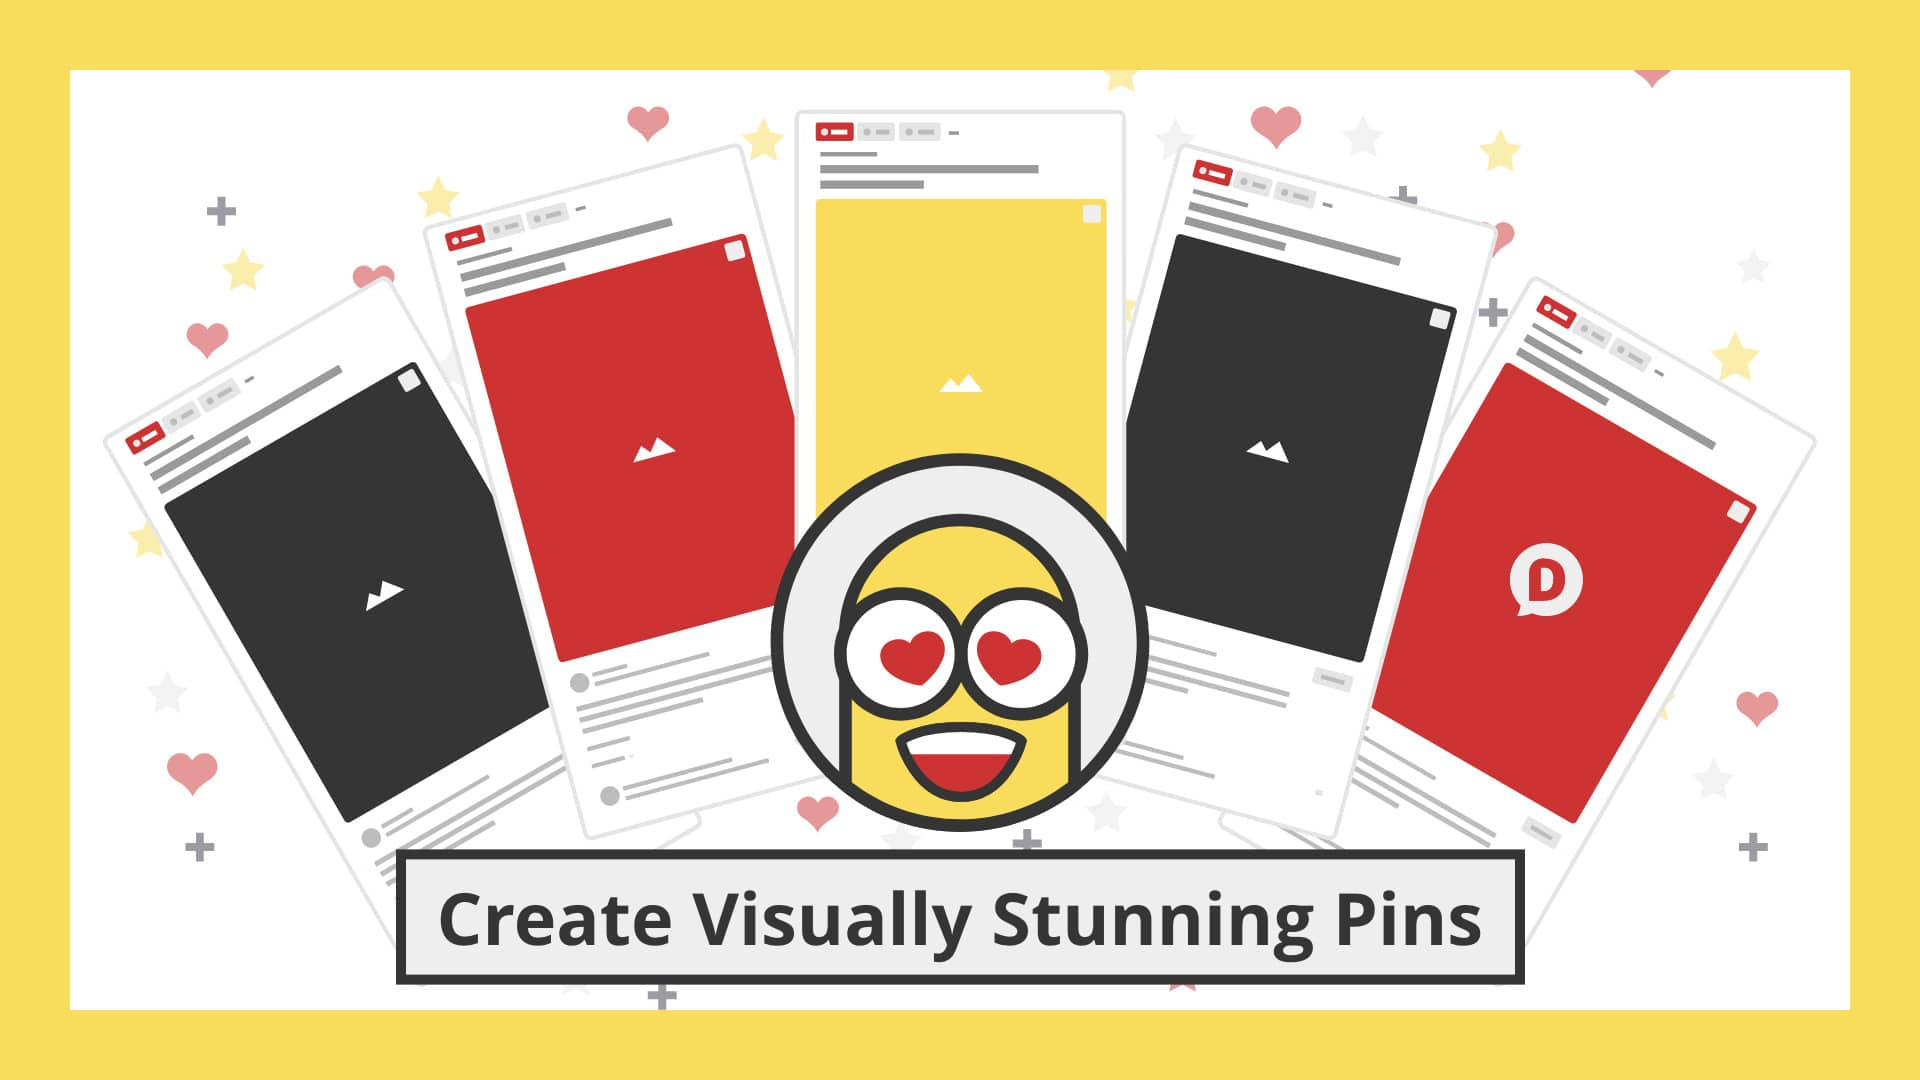 visually stunning pins